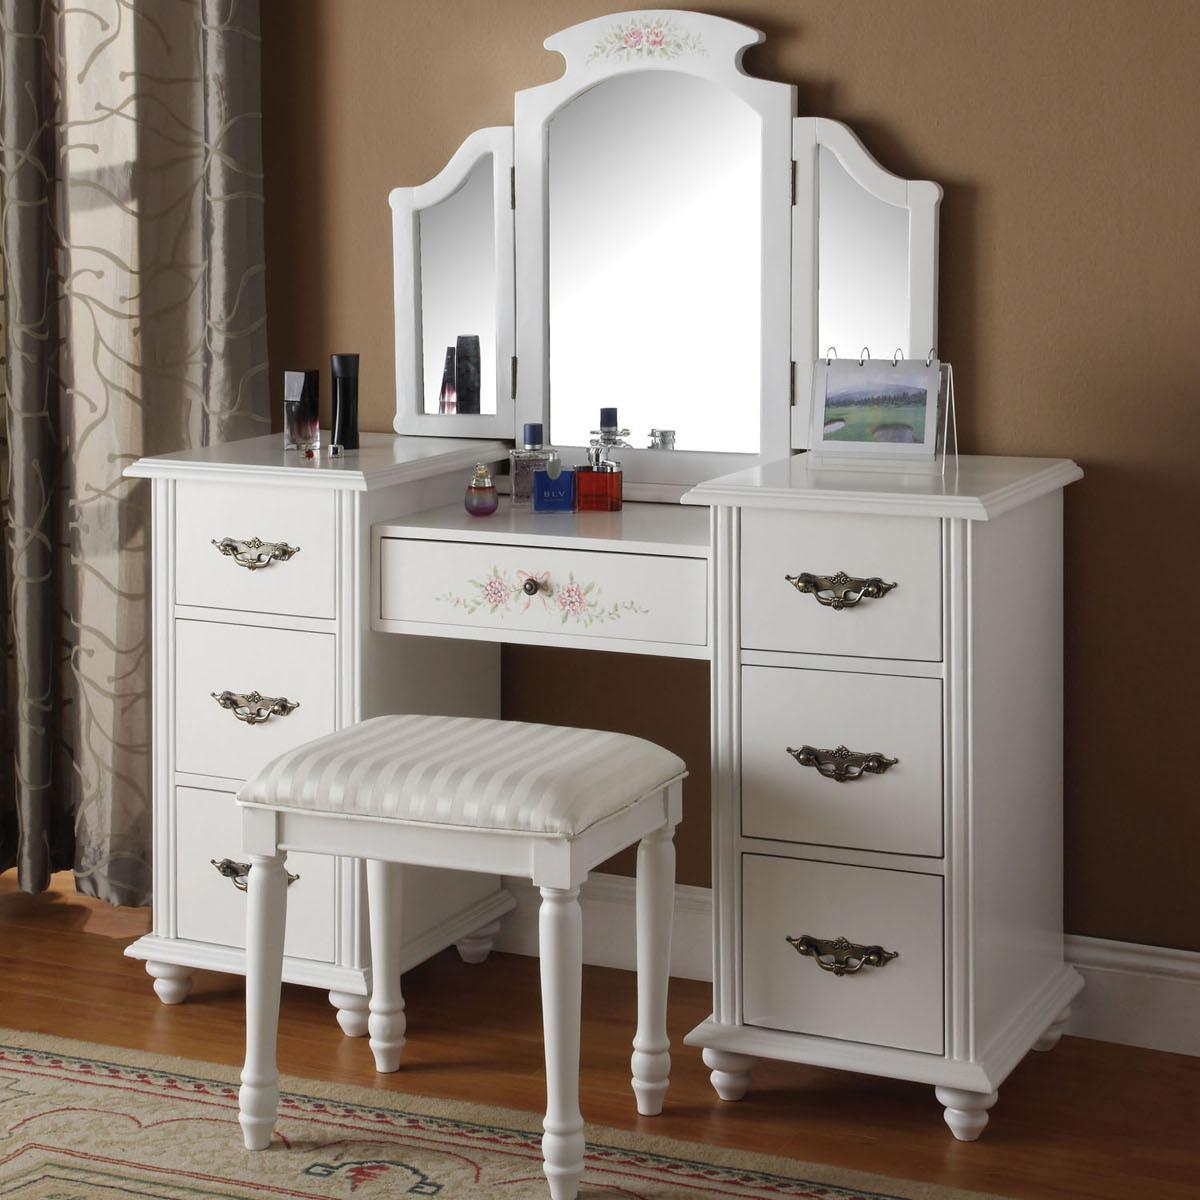 Acme Furniture Torian Vanity Group - Item Number: 90026+90027